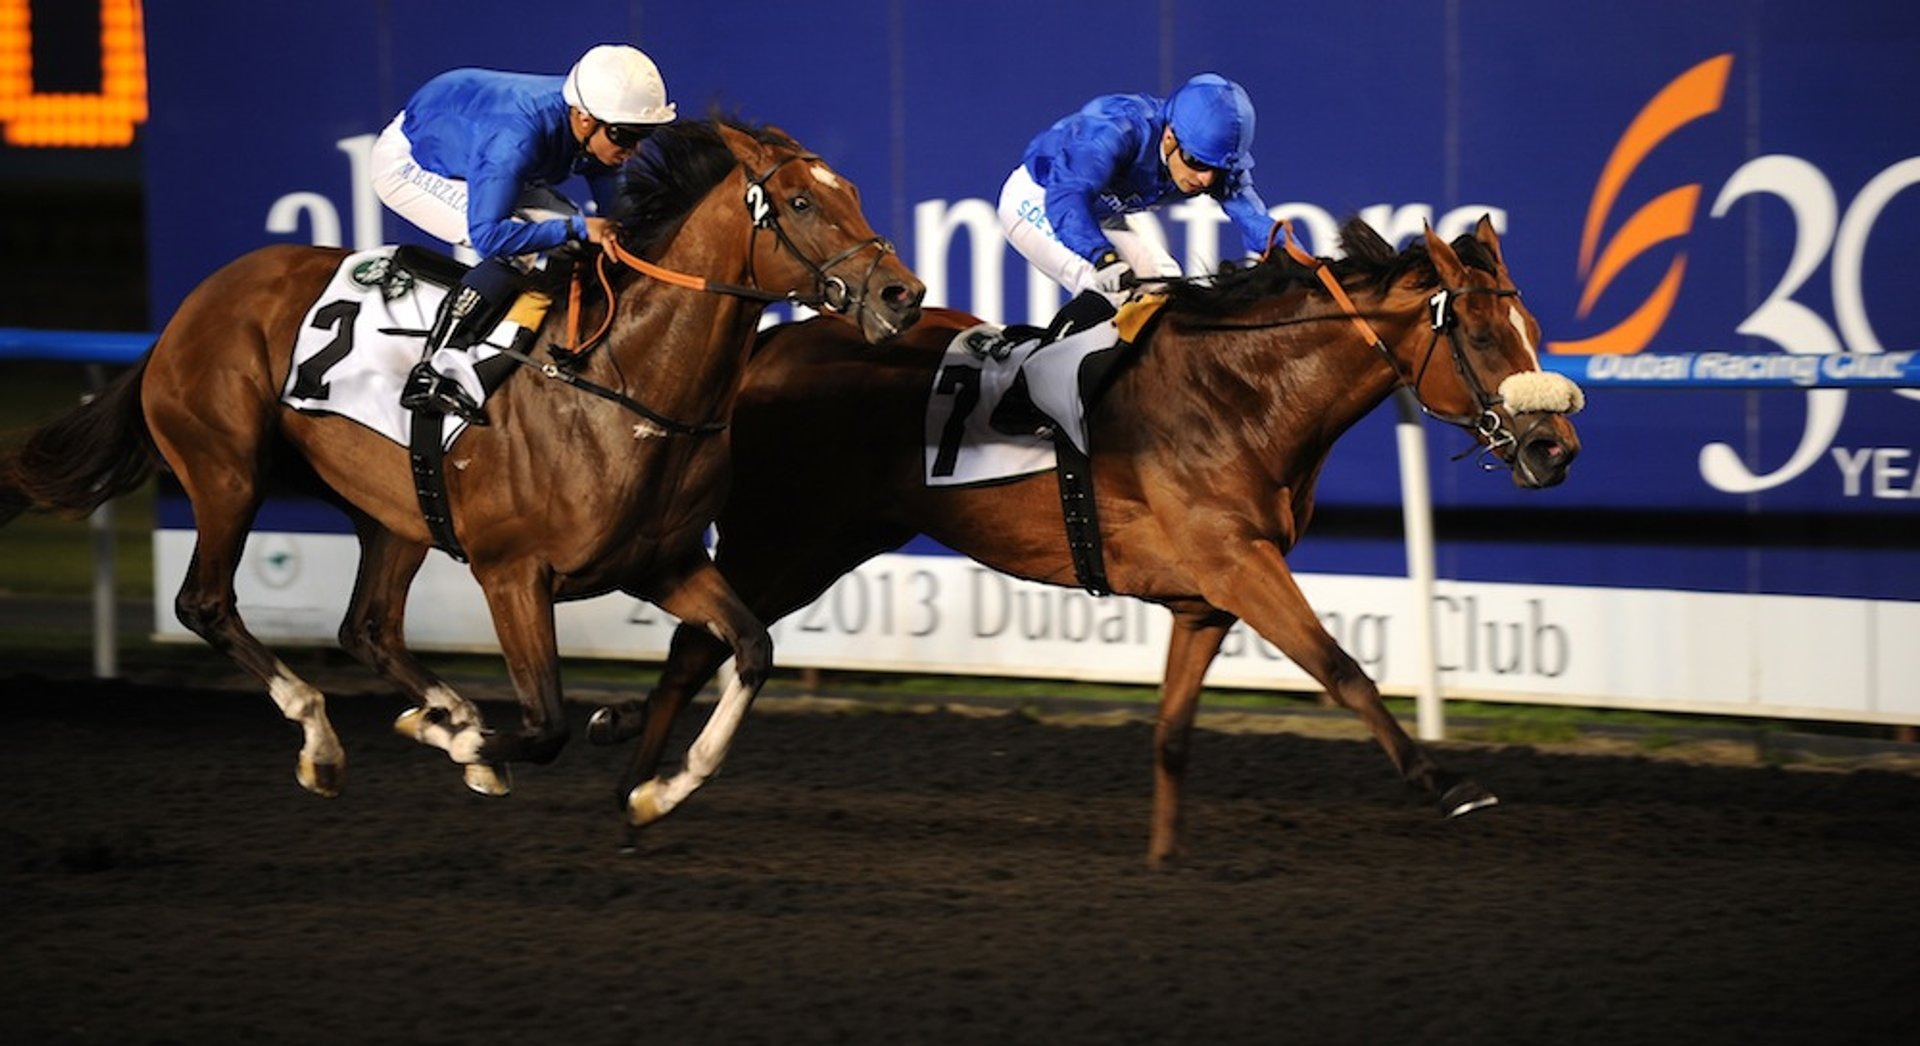 Domestic Horse Racing Season in Dubai - Best Time